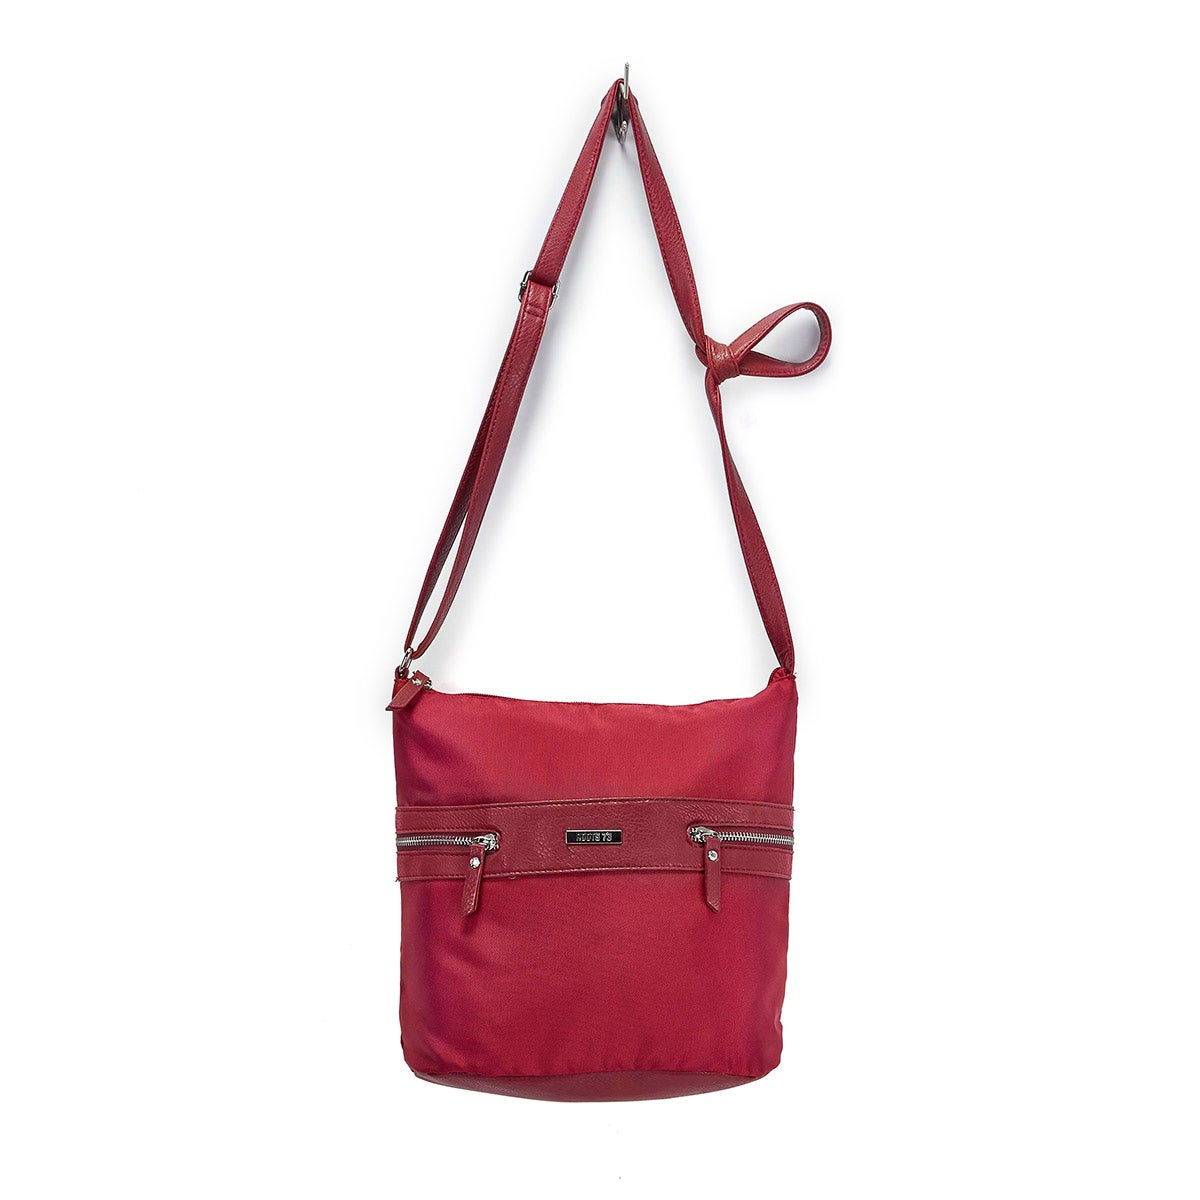 Lds Roots73 red pebble hobo bag